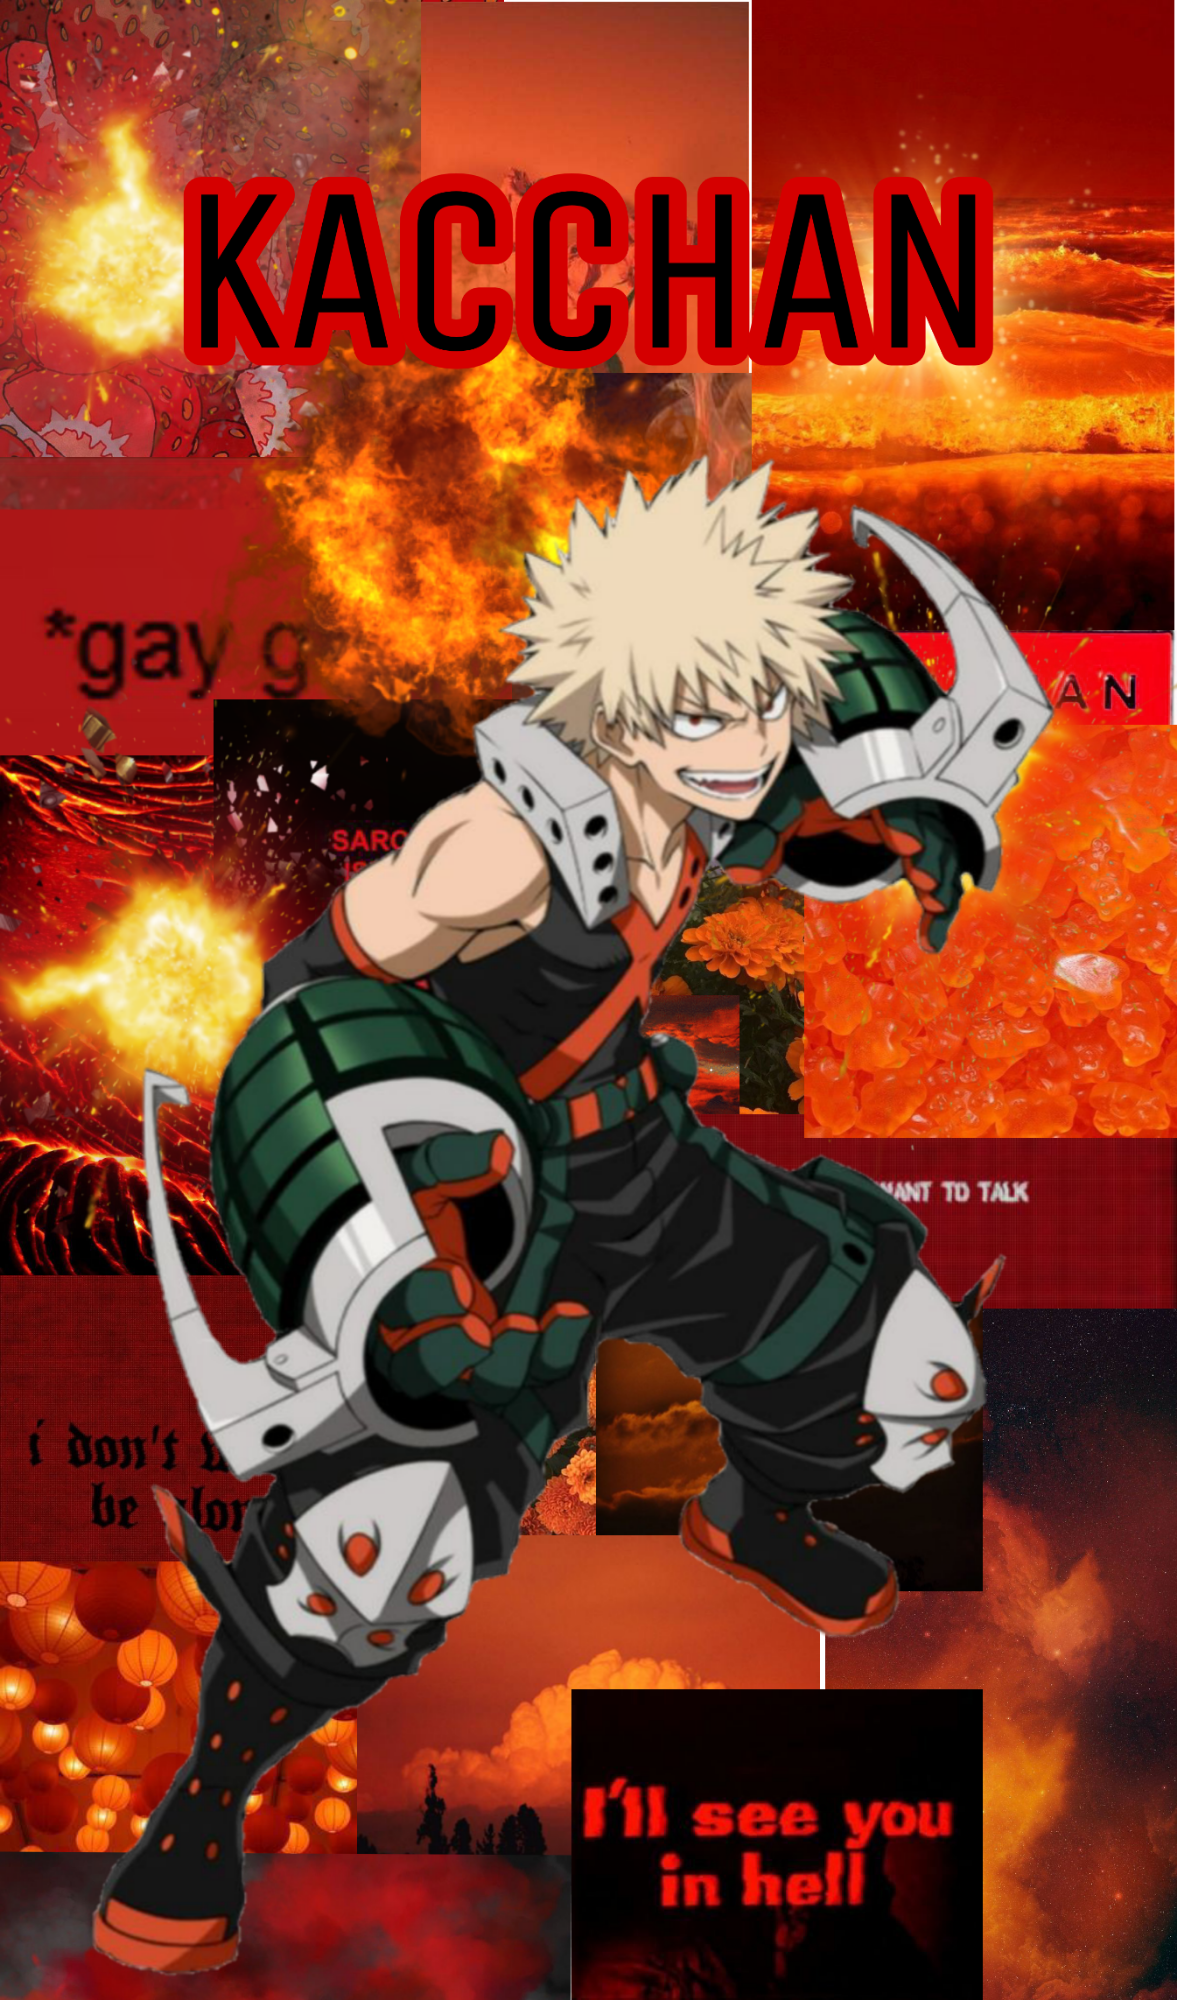 I Made A Kacchan Wallpaper Do You Like It ㅇㅅㅇ Fandom